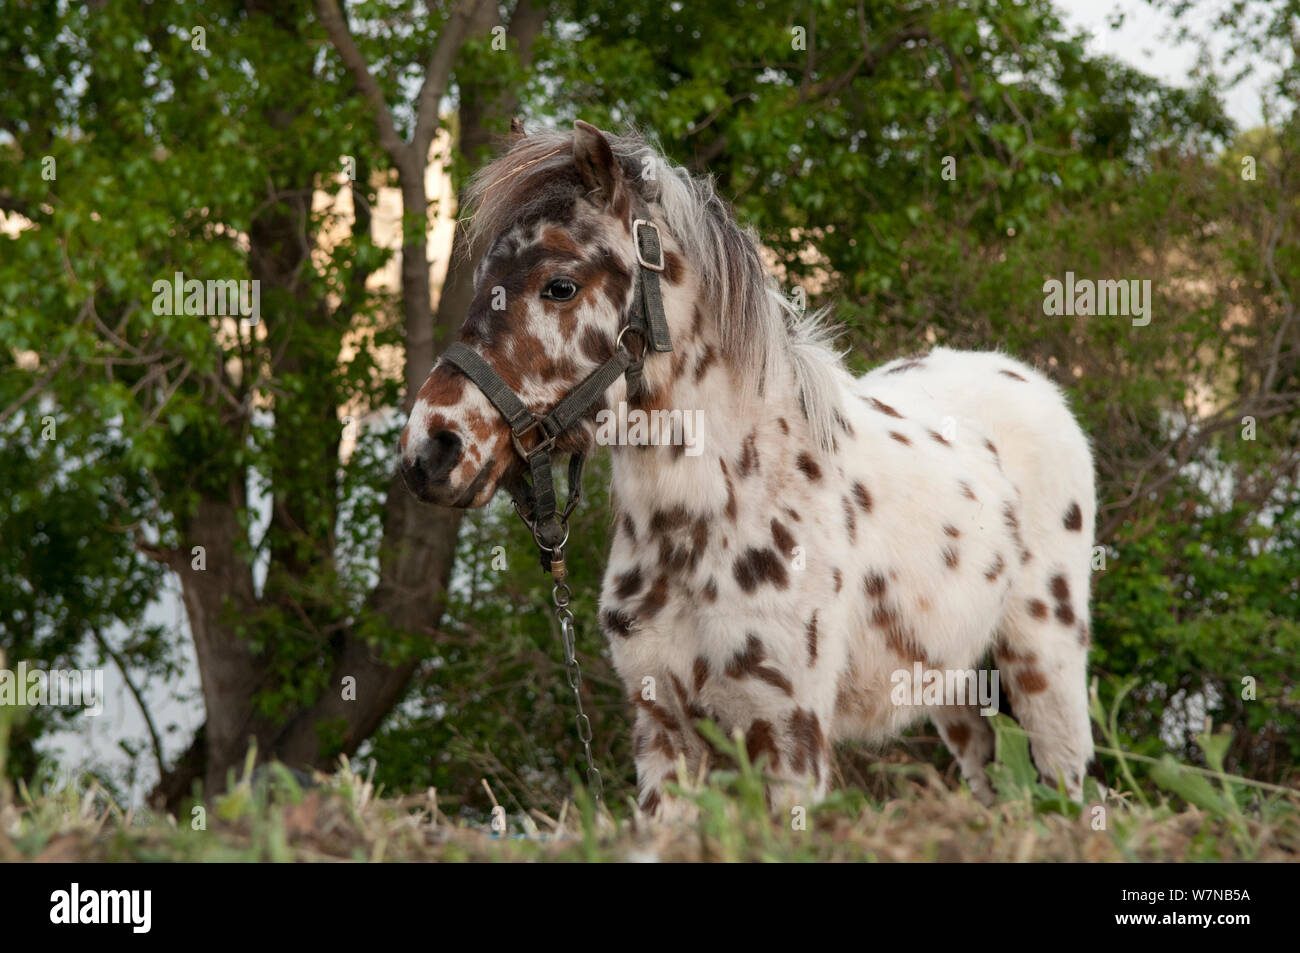 Appaloosa Horses Stock Photos & Appaloosa Horses Stock